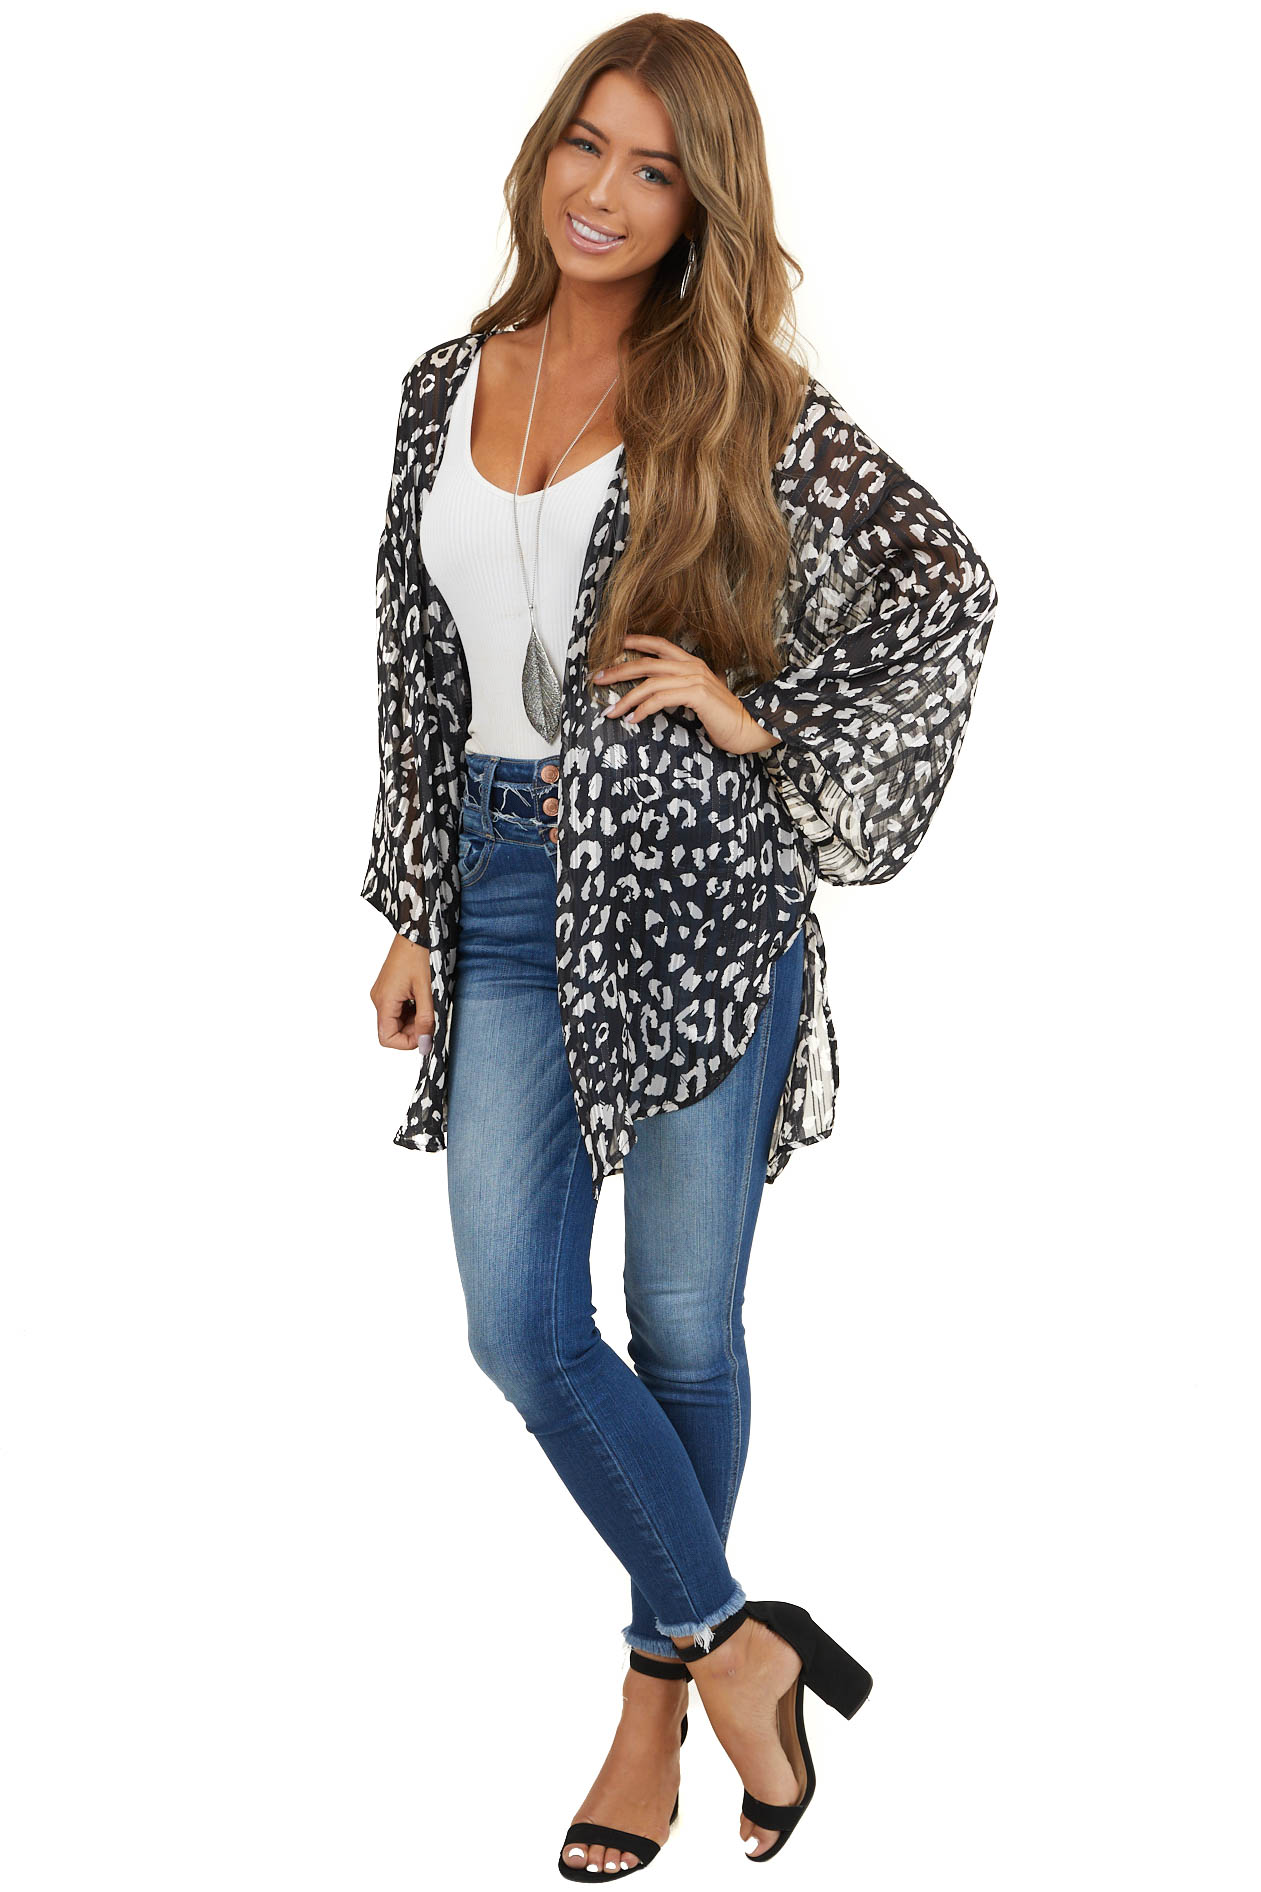 Black and White Leopard Print Kimono with Silver Threading